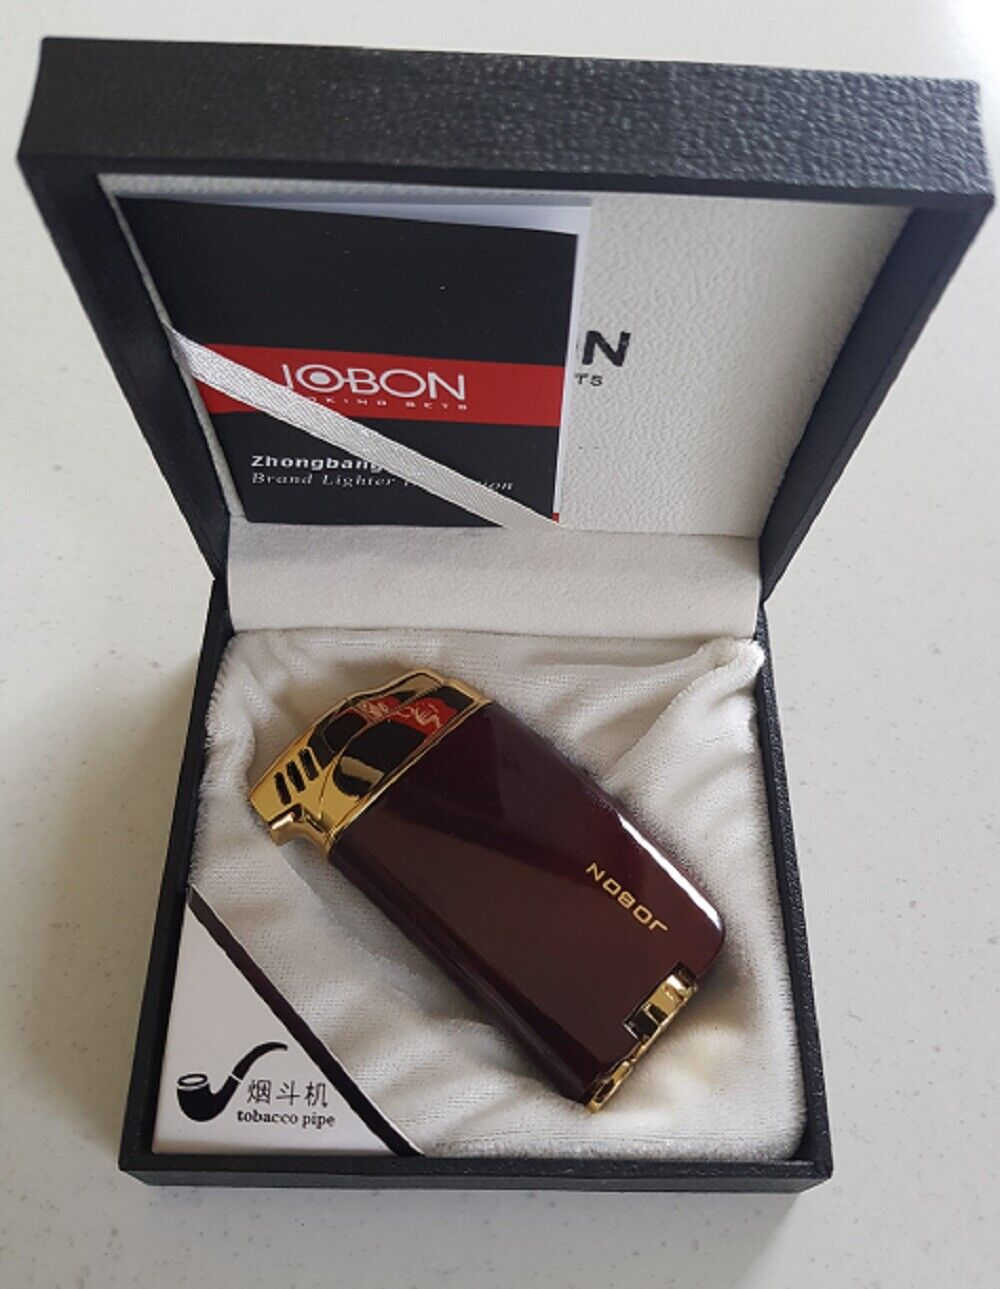 Image 31 - Jobon Quality pipe ligther gift boxed